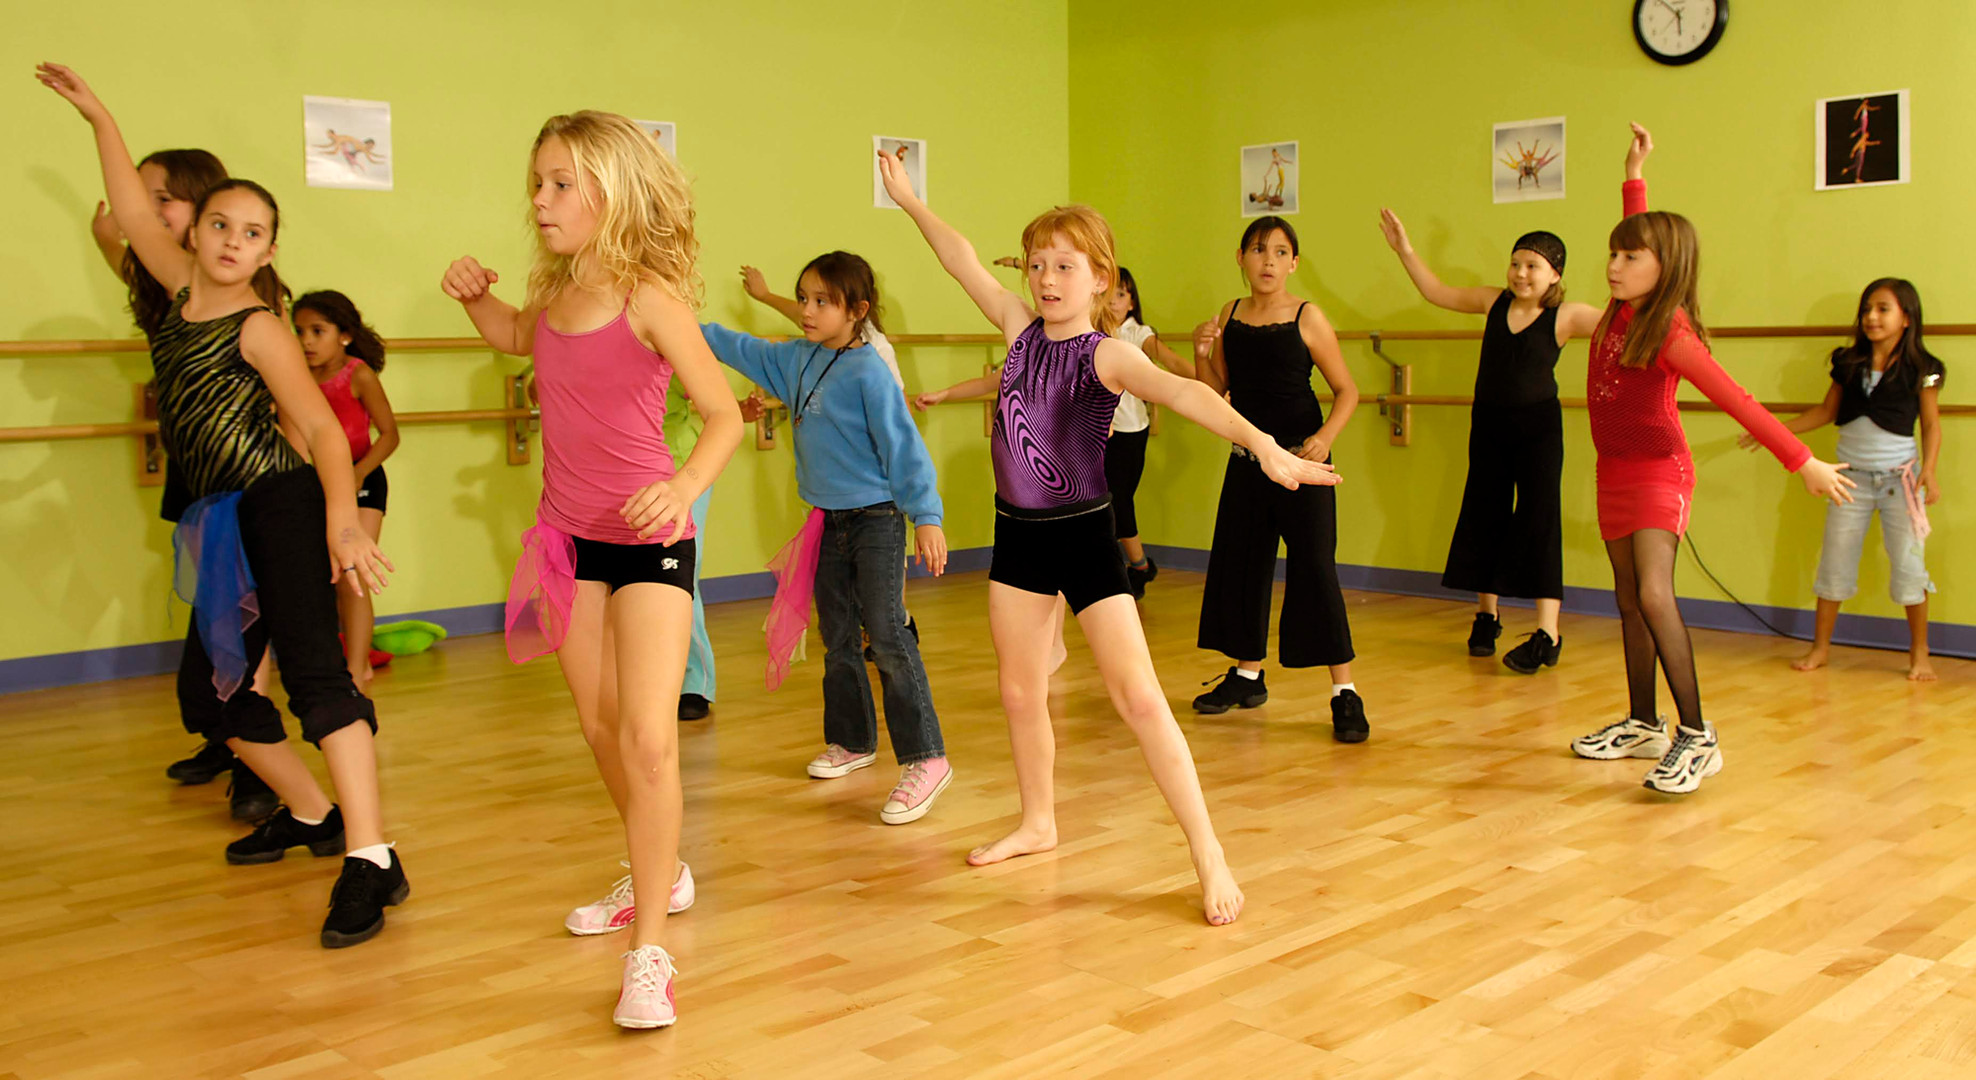 Ballet_Dance_Gym_Magic_2013_9.jpg